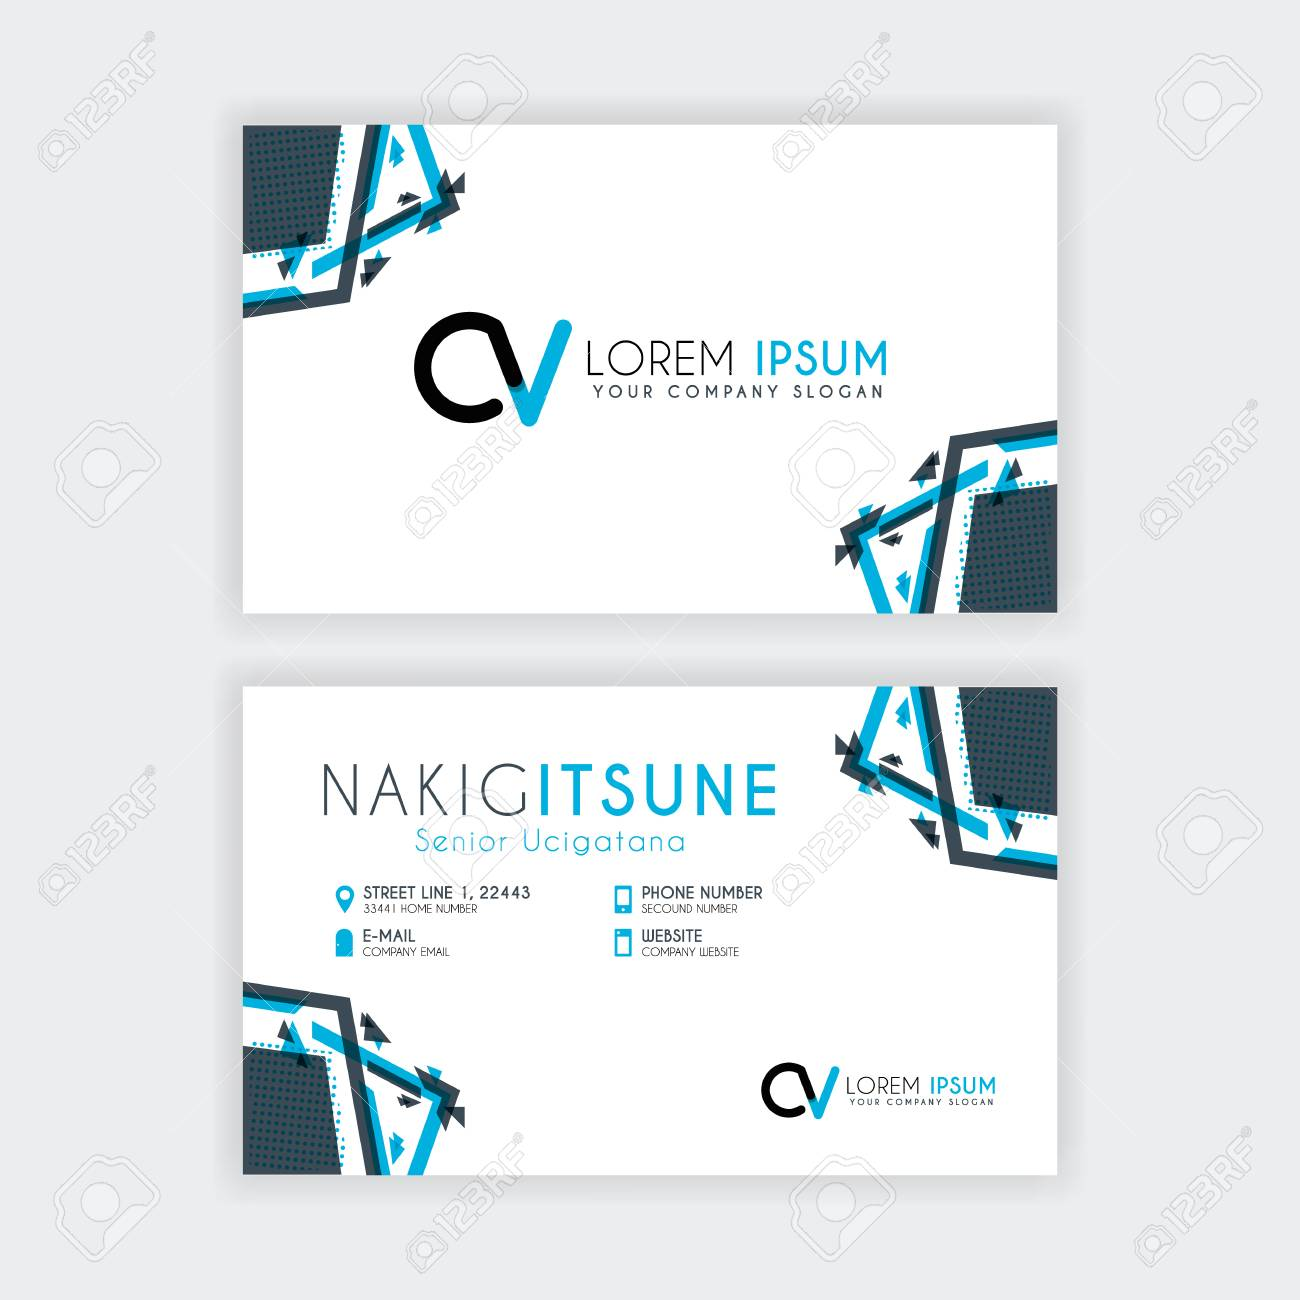 Simple Business Card With Initial Letter Cv Rounded Edges With